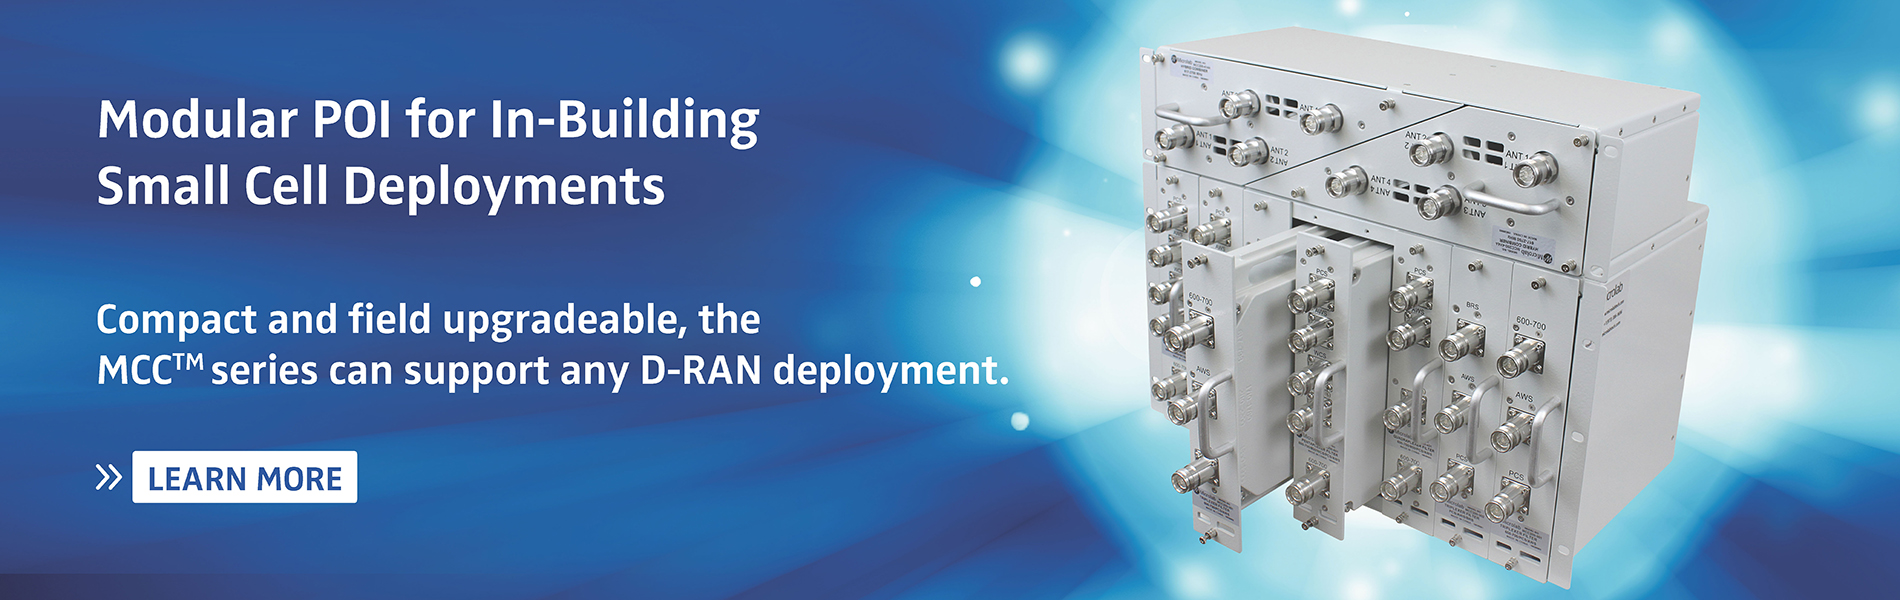 MCC Series Modular POI for In-Building Small Cell Deployments